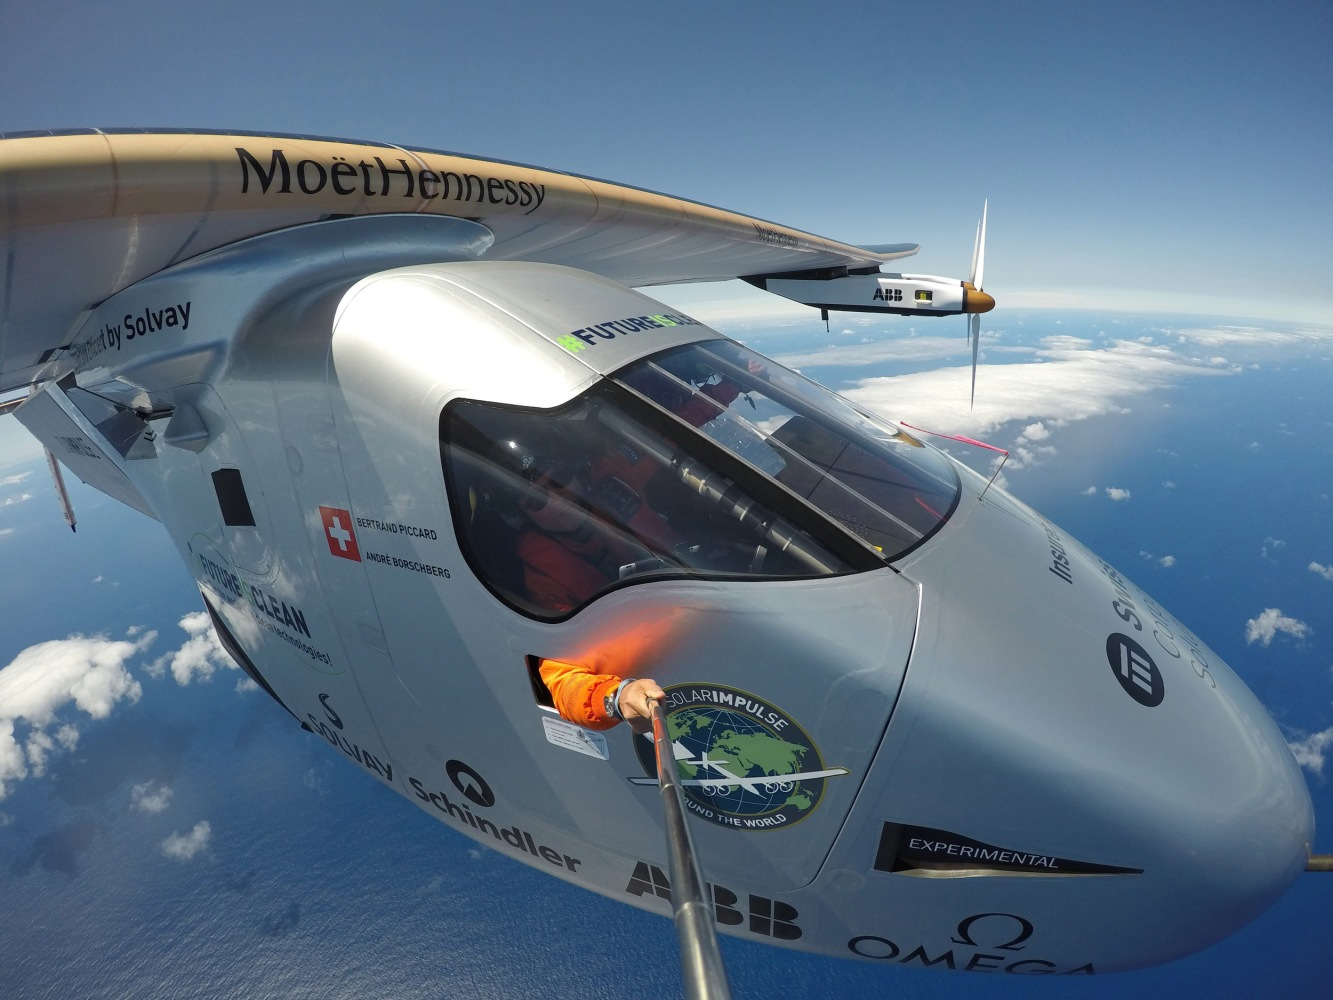 39 impulse 39 flight completes first solar round the world for Airplane plan